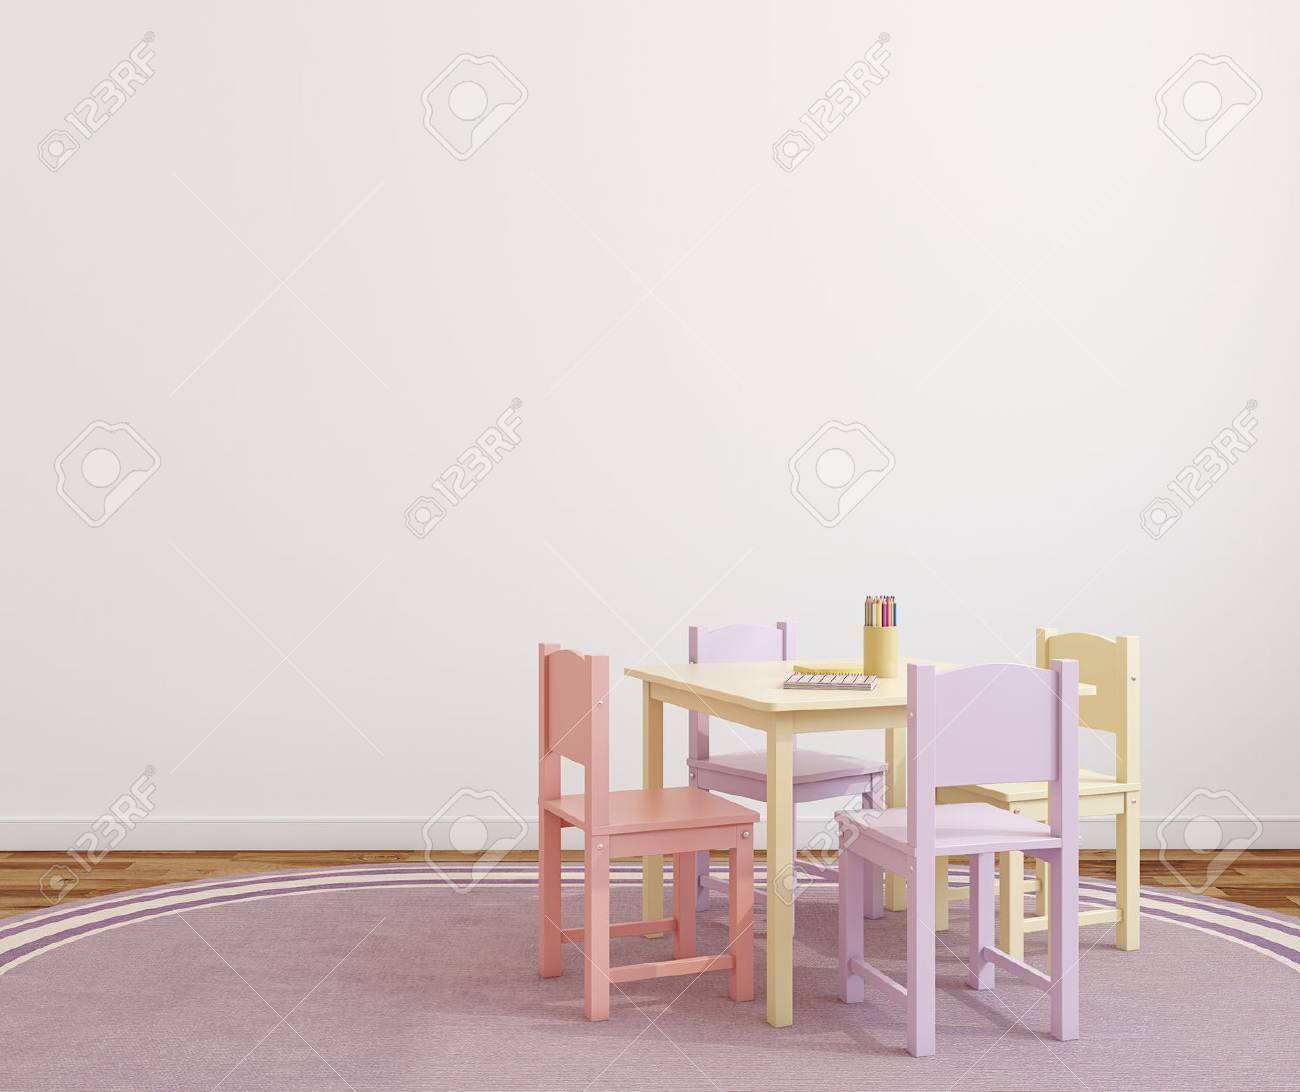 Playroom interior with small table and four chairs. 3d render. - 47689228